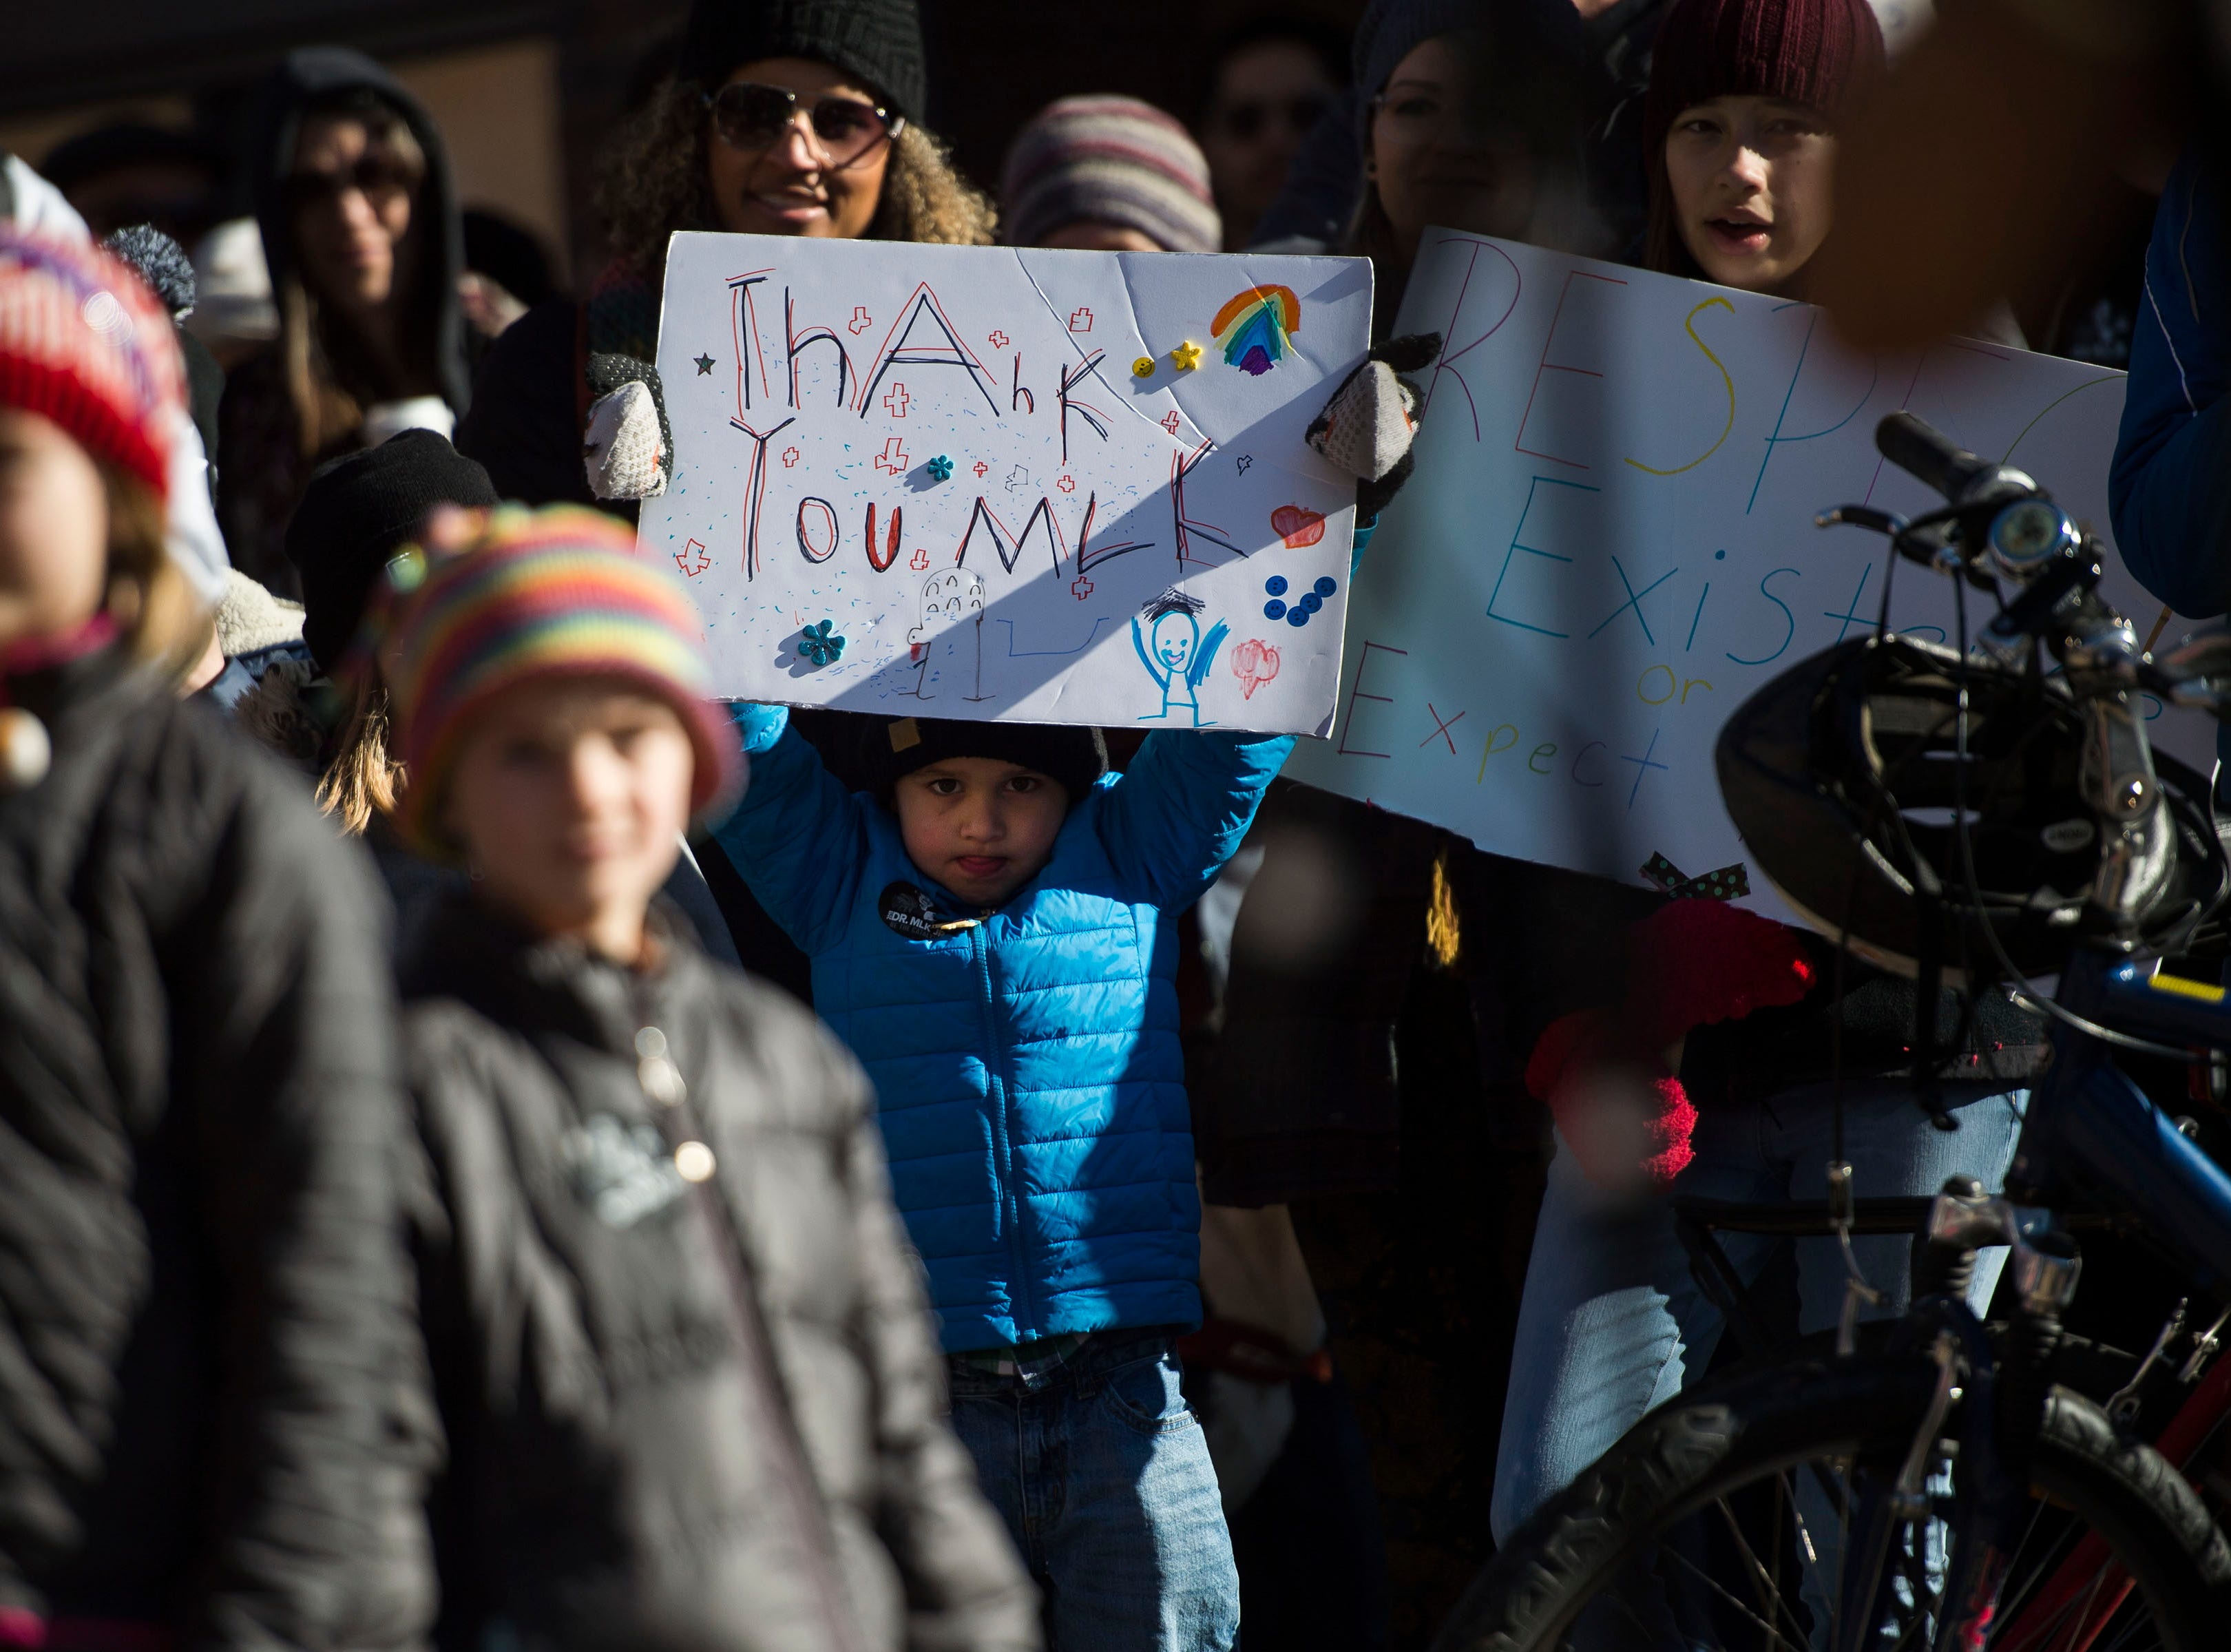 A young march participant holds up his sign in Old Town Square during the Dr. Martin Luther King, Jr. March & Celebration on Monday, Jan. 21, 2019, in Fort Collins, Colo.